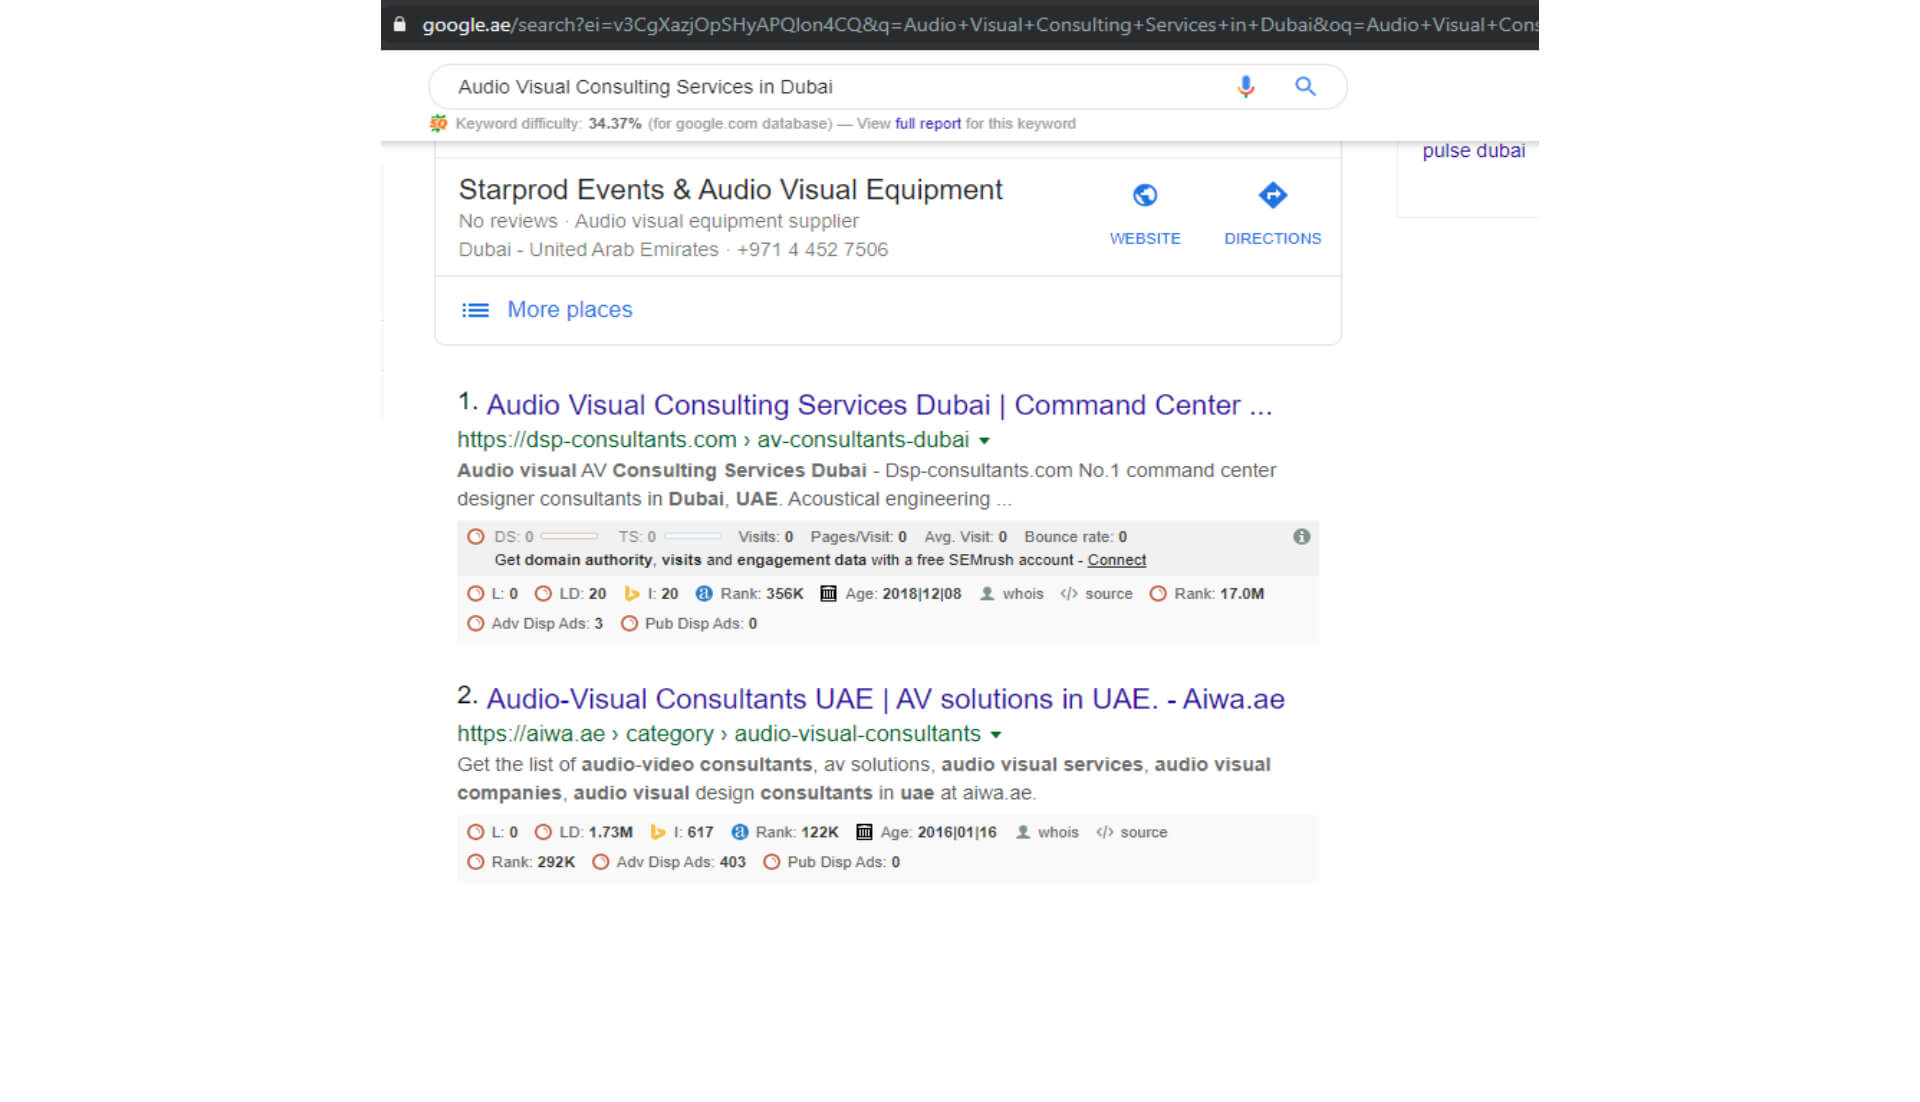 Audio Visual Consulting Services in Dubai